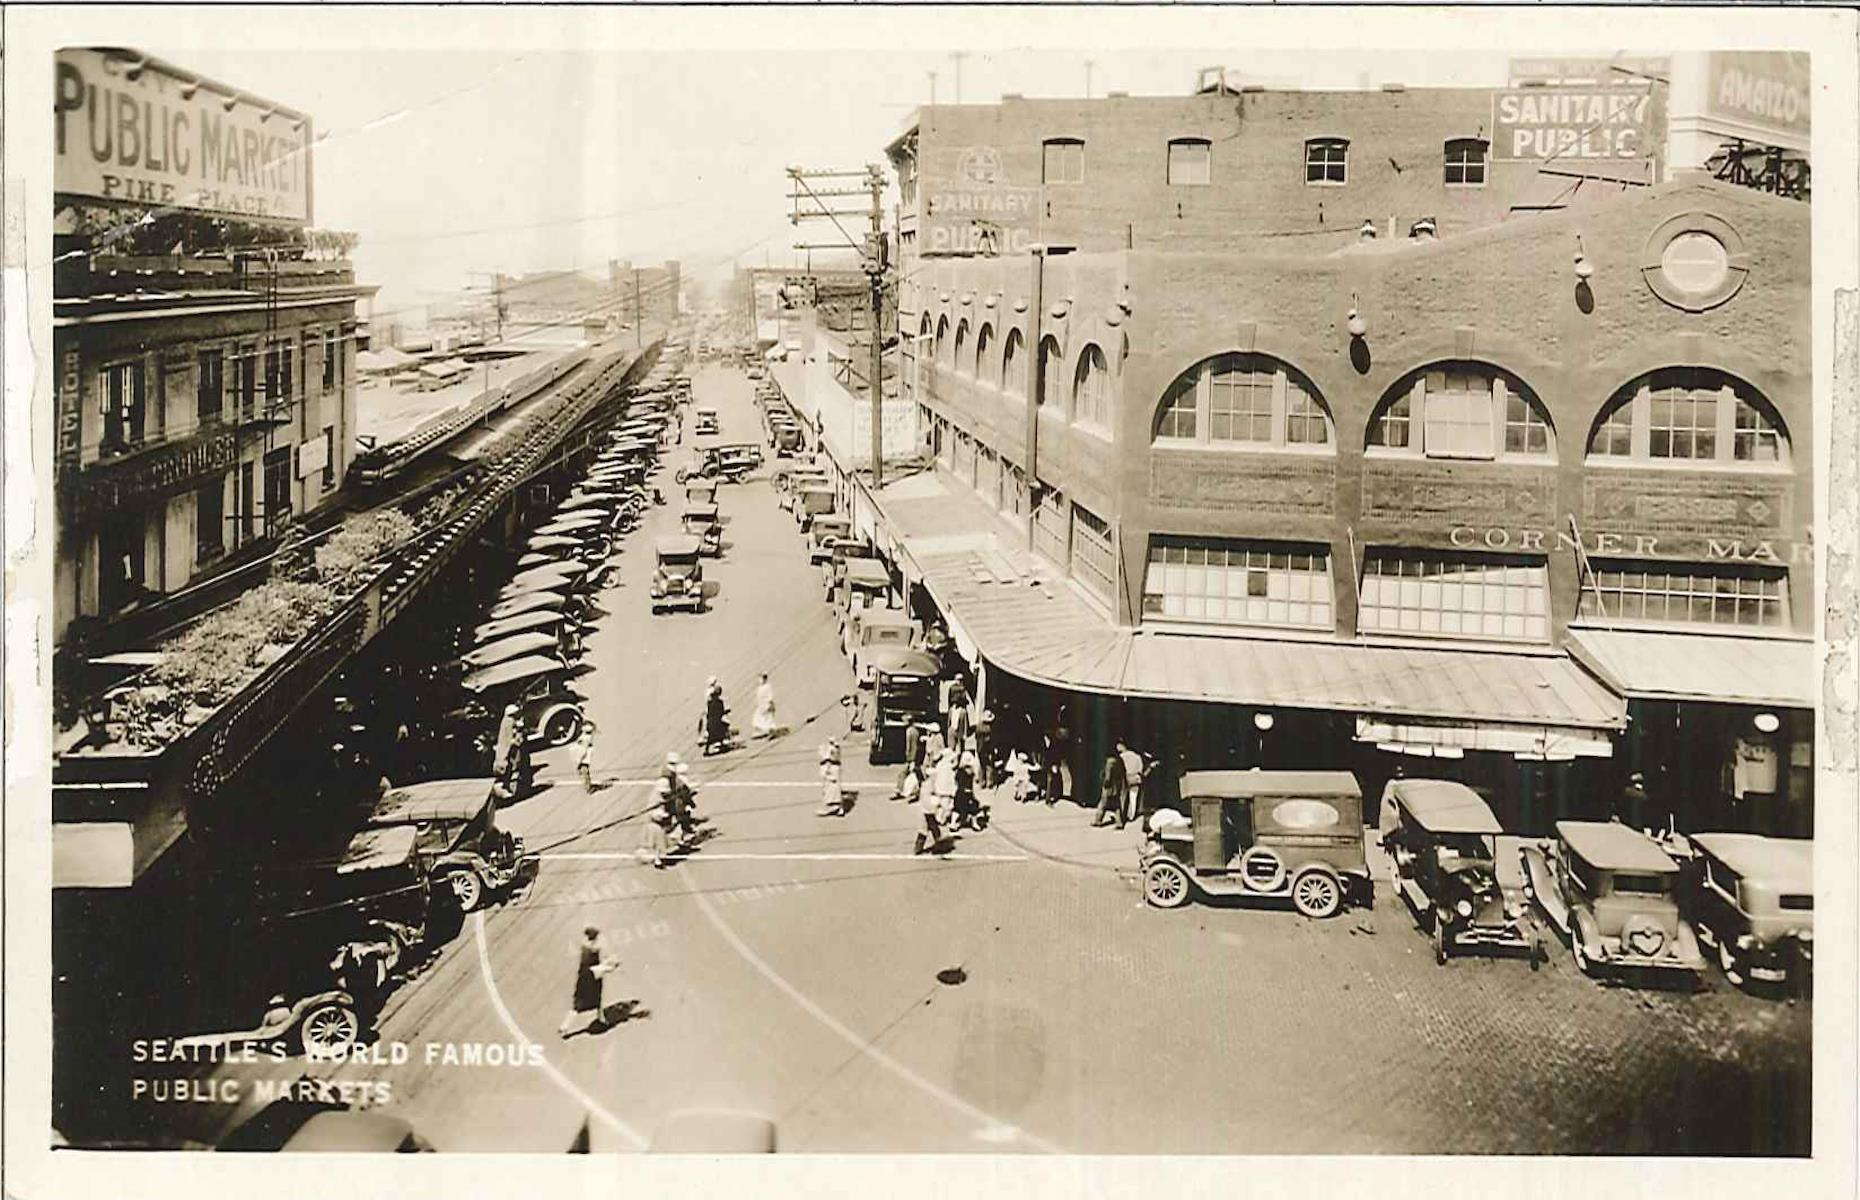 Slide 37 of 48: Opening in 1907, Seattle's marketplace is the oldest continuously operating farmers' market in the country and one of the city's most popular sights. After prospering in the 1920s (pictured) and 1930s, it fell on hard times and was slated for demolition in the 1960s. However, a successful campaign saw it saved and a 17-acre historic district was created in 1971, the same year the very first Starbucks opened at Pike Place. The market was renovated in 1974 and today it usually welcomesaround 10 million visitors.